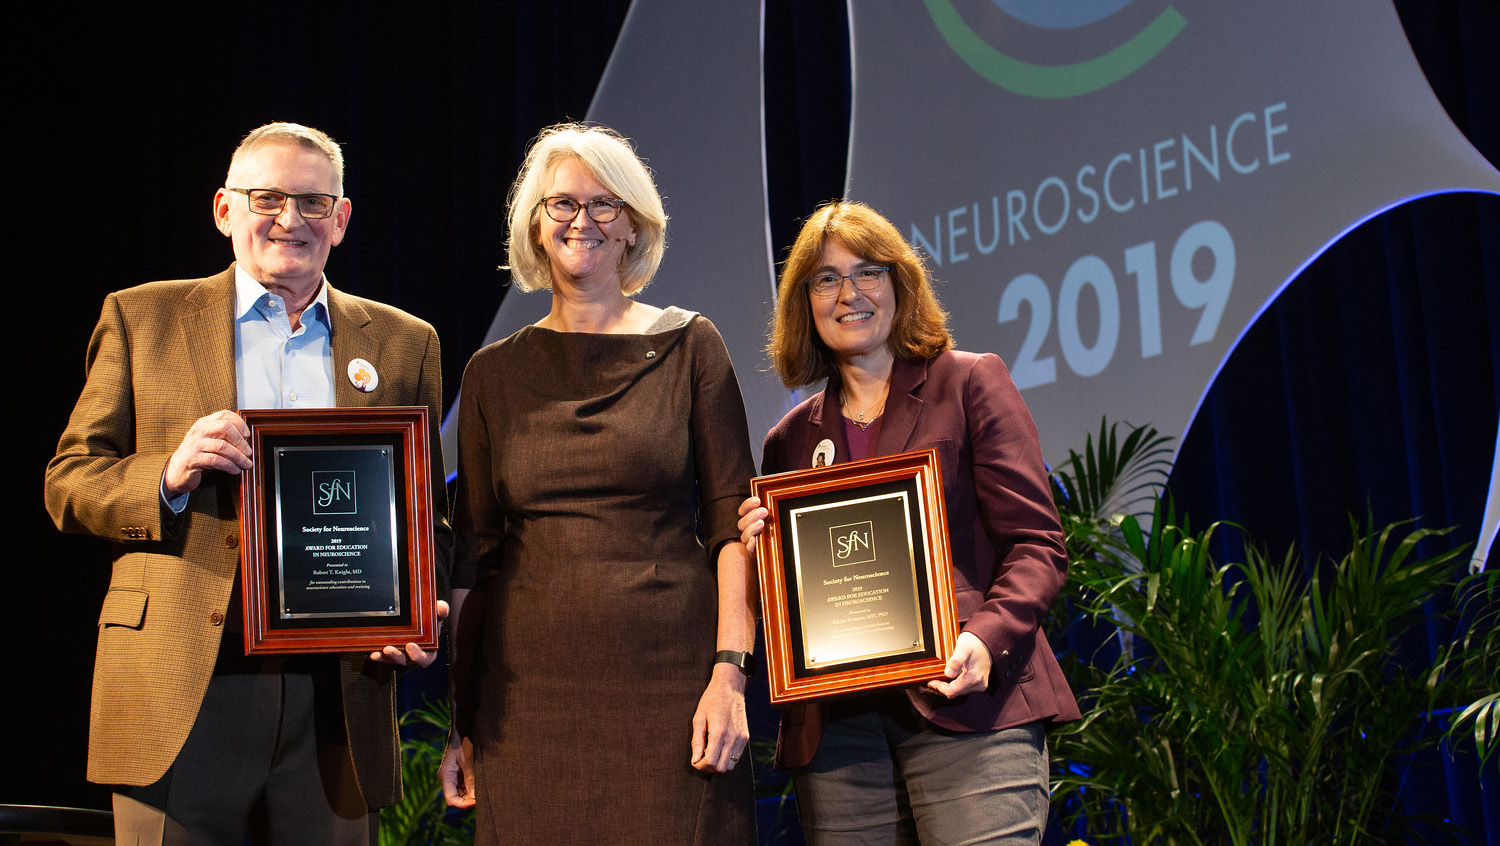 Robert T. Knight, MD (right), of the University of California, Berkeley, and Sabine Kastner, MD, PhD (left), of Princeton University, accept the Award for Education in Neuroscience